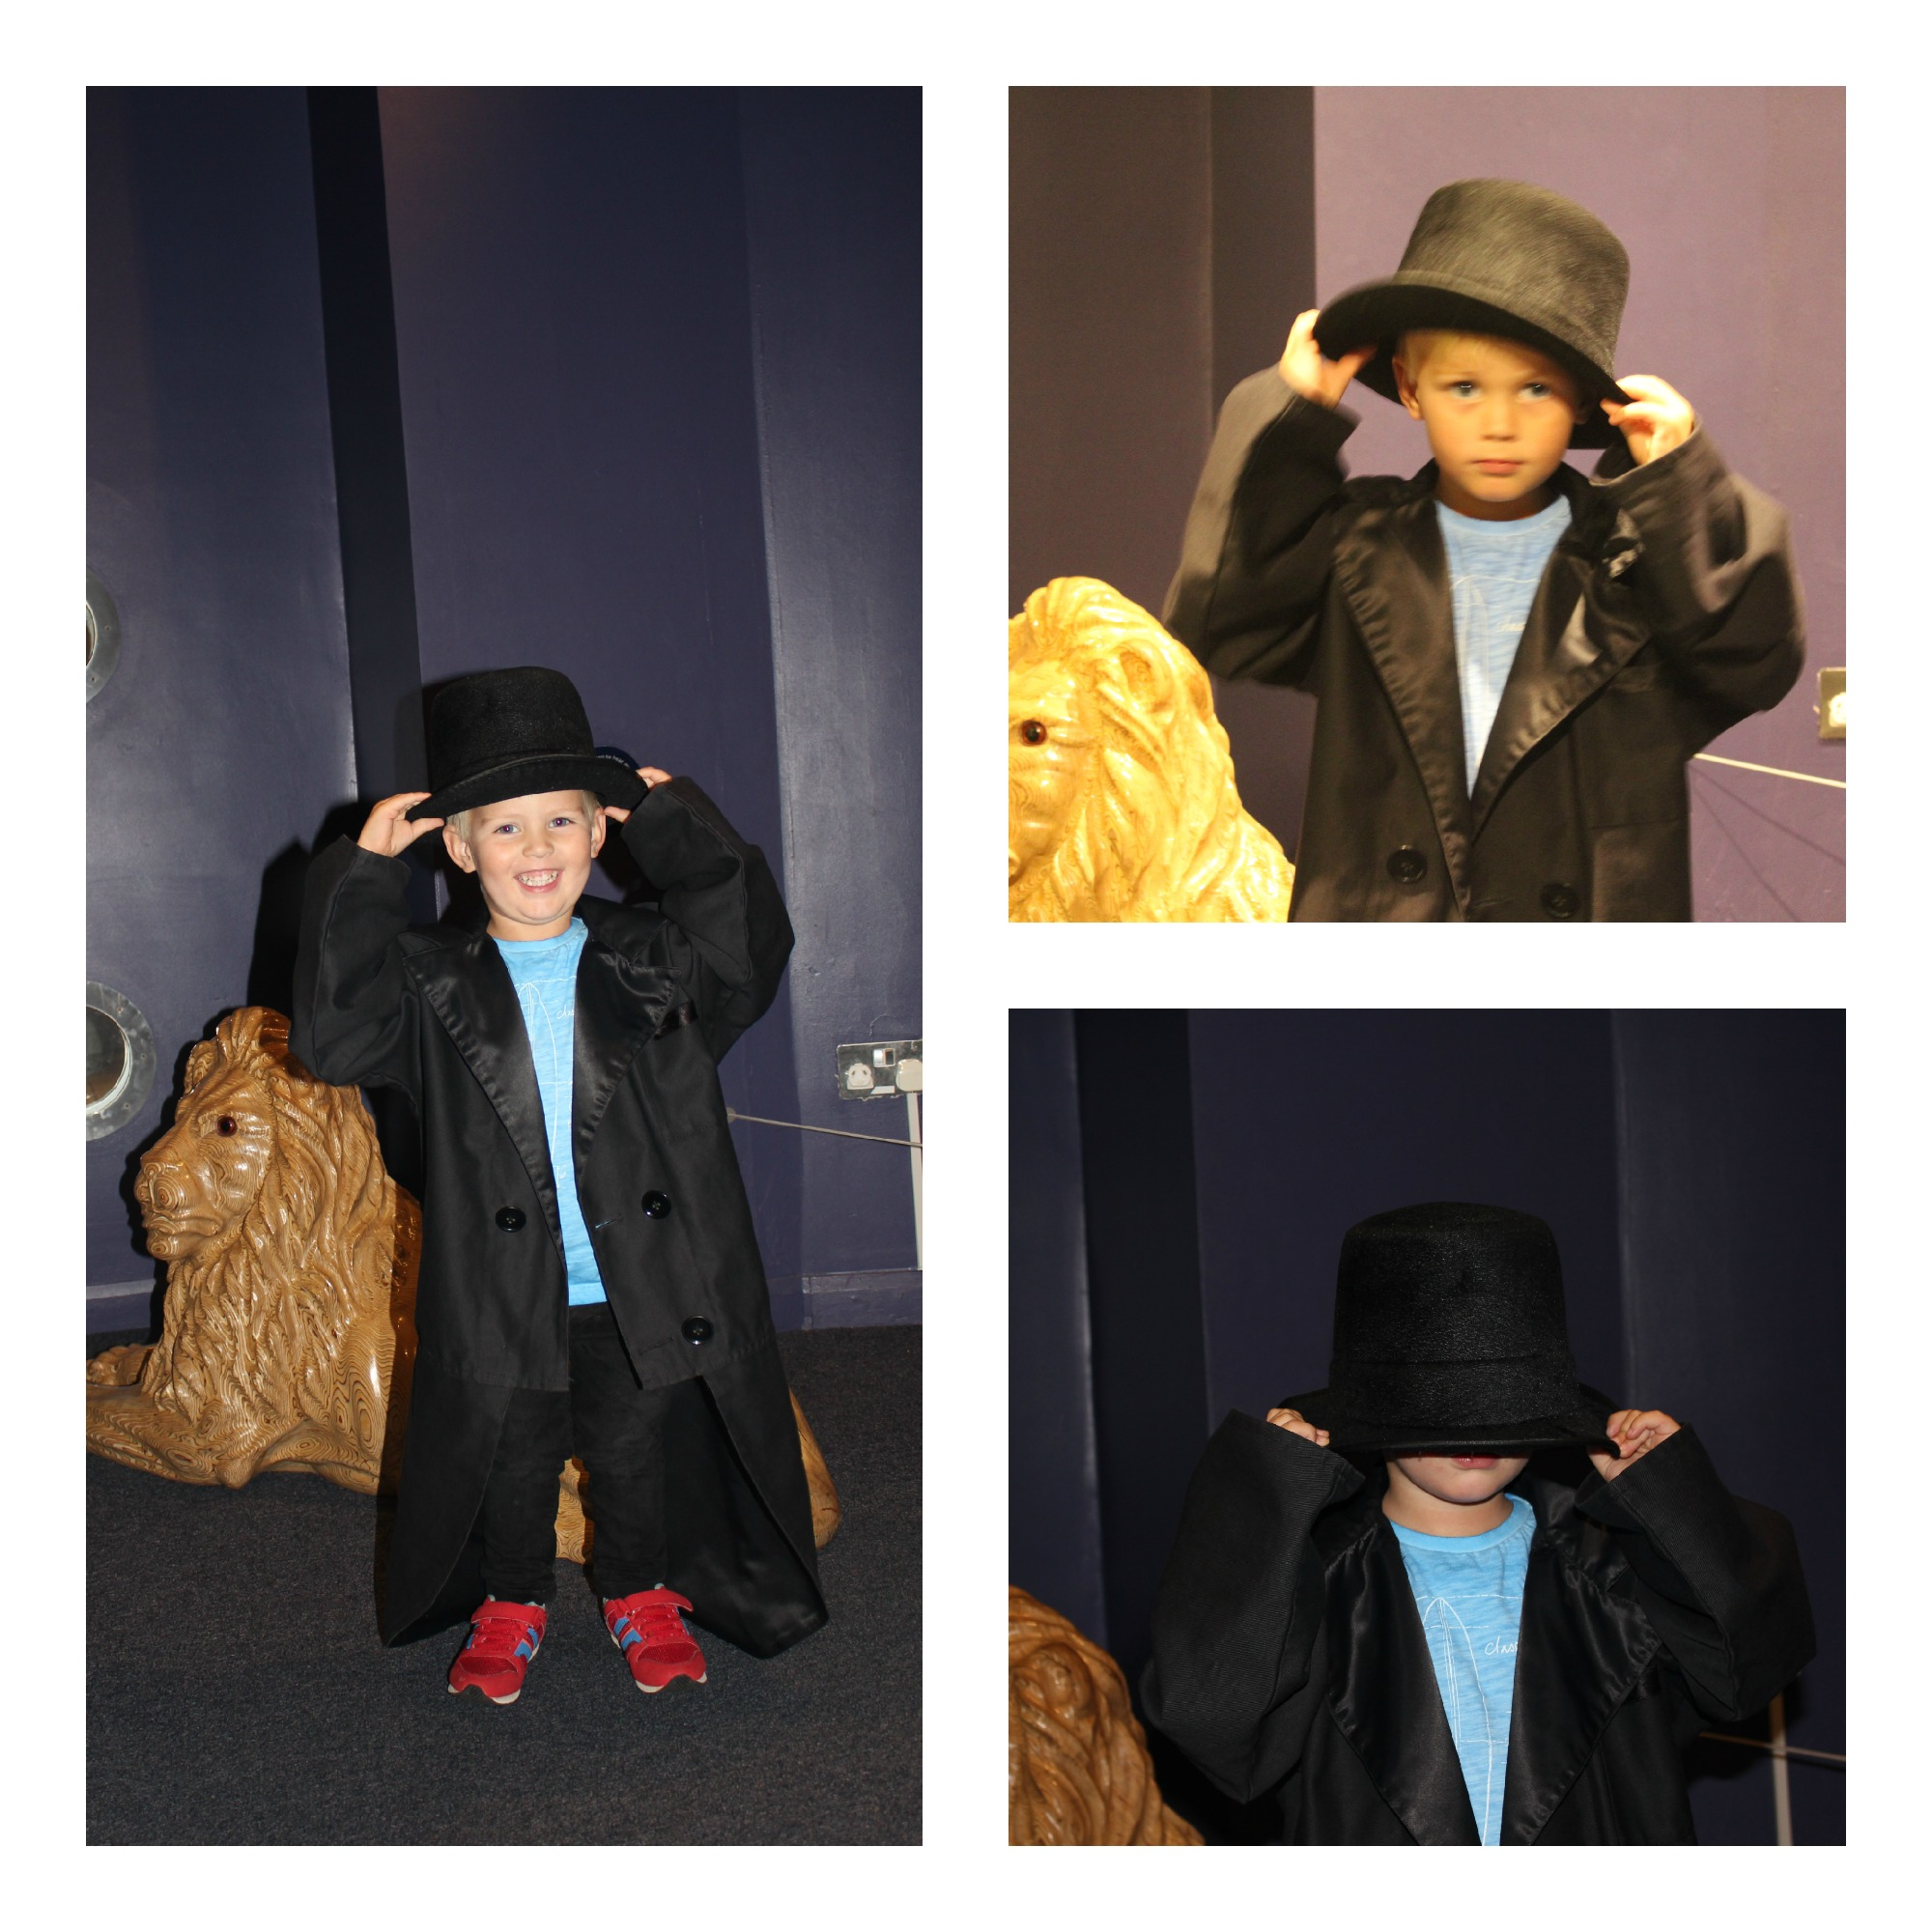 dress up in sunderland winter garden museum